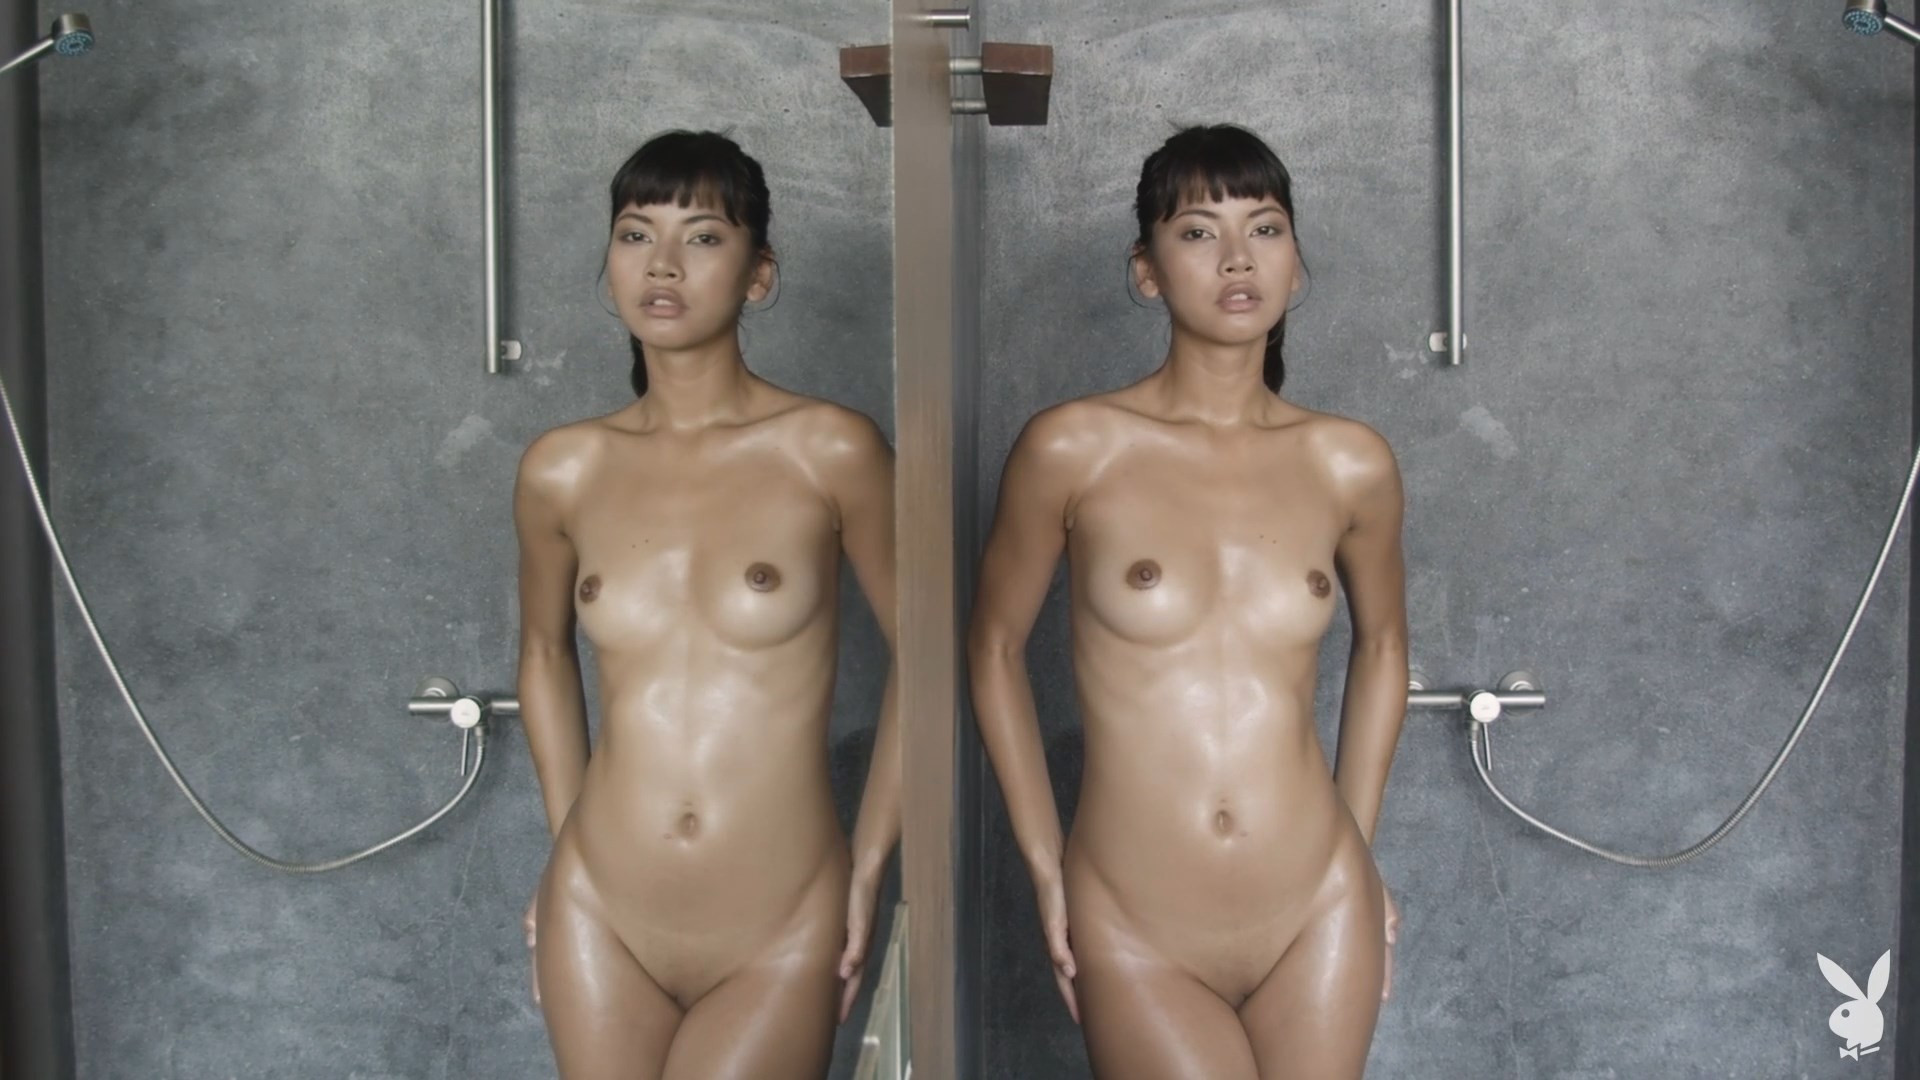 Cara Pin Nude Soft Shower scr thefappening.nu 5